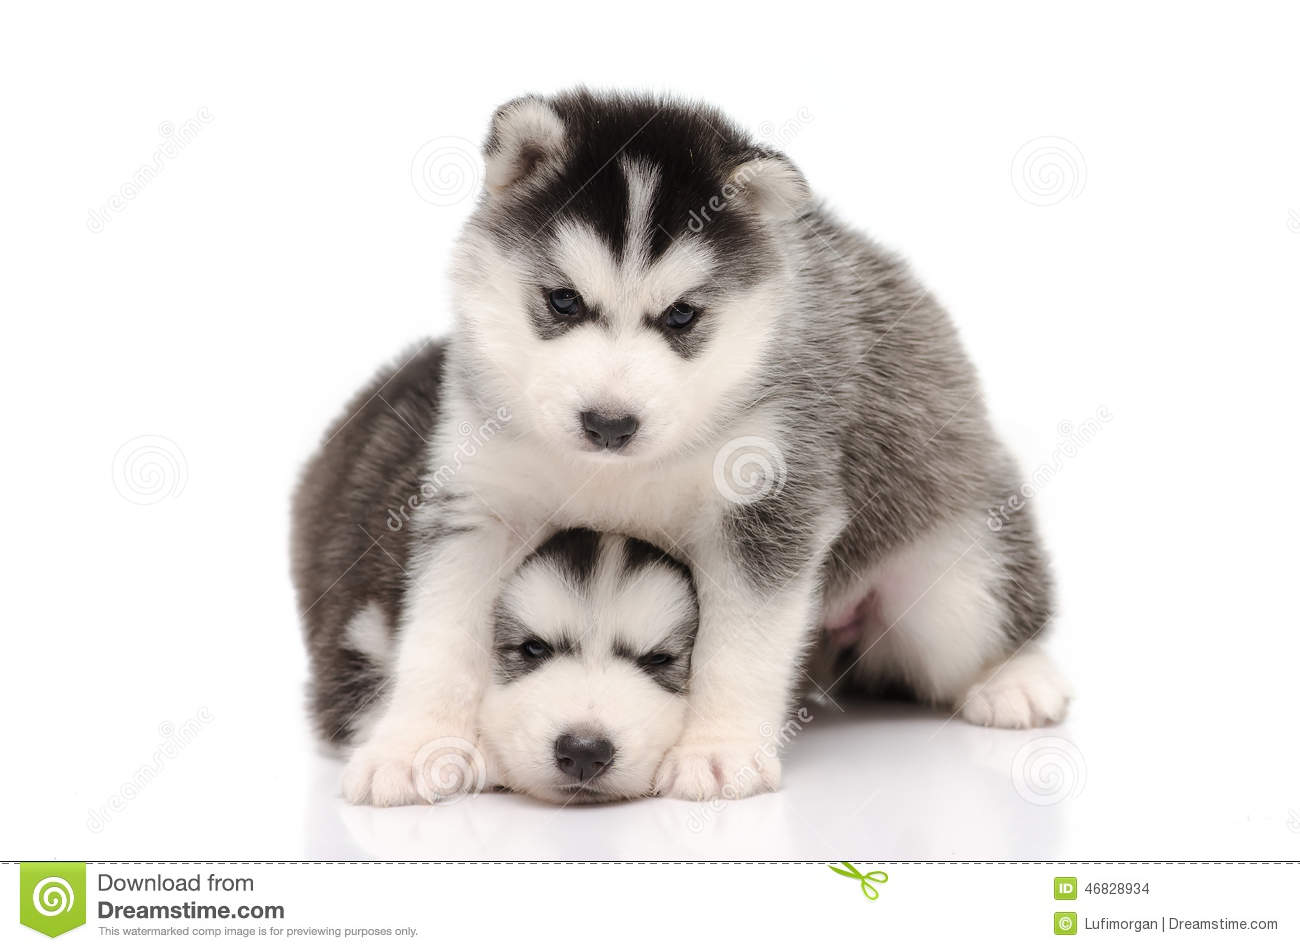 Cute Black And White Siberian Husky Puppy Sitting And